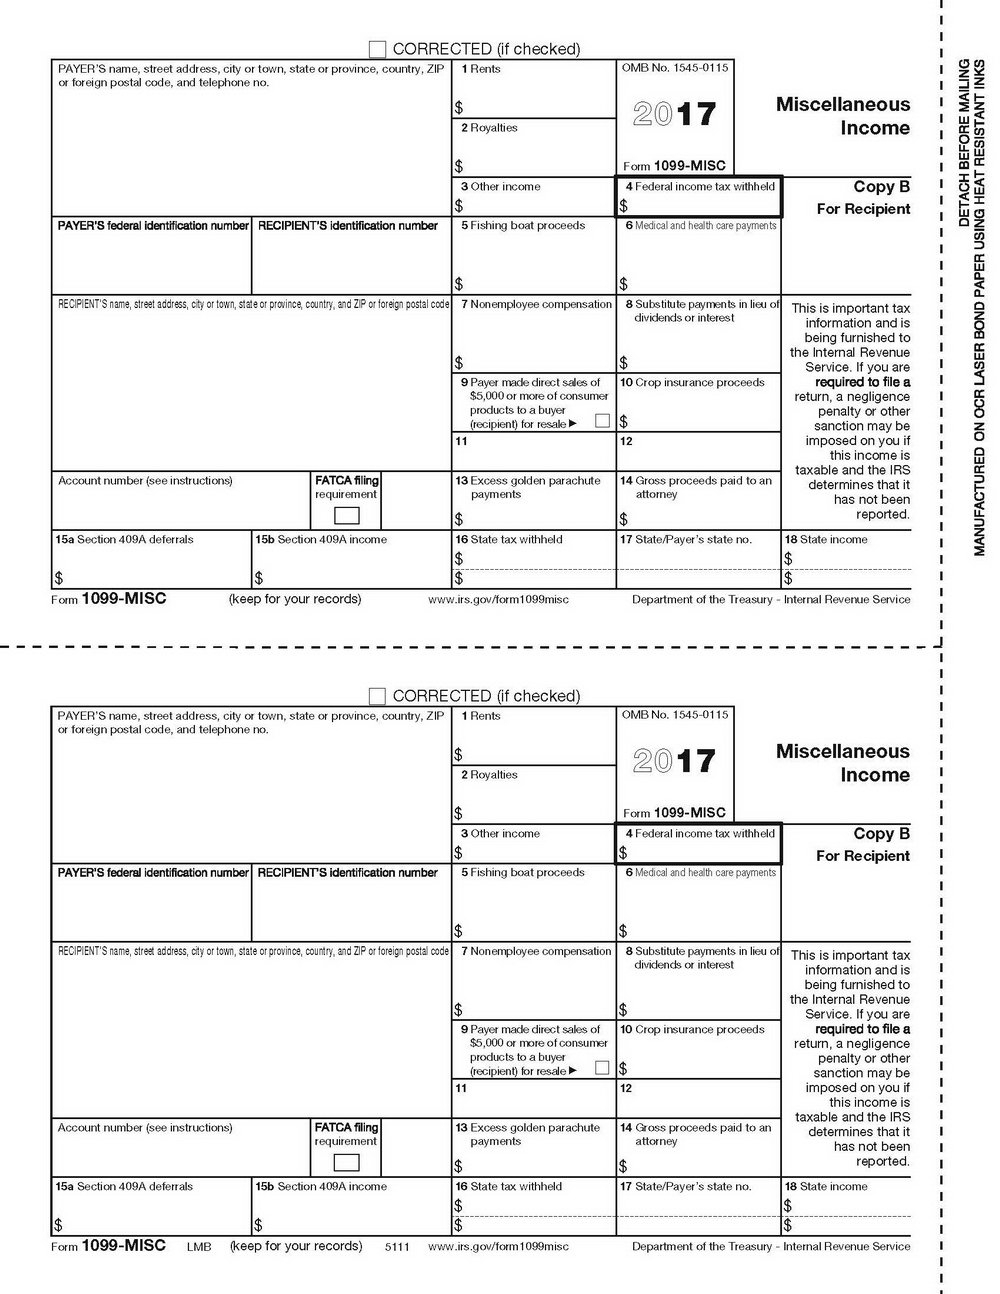 Printable 1099 Form 2017 Free   Mbm Legal - Free Printable 1099 Misc Forms